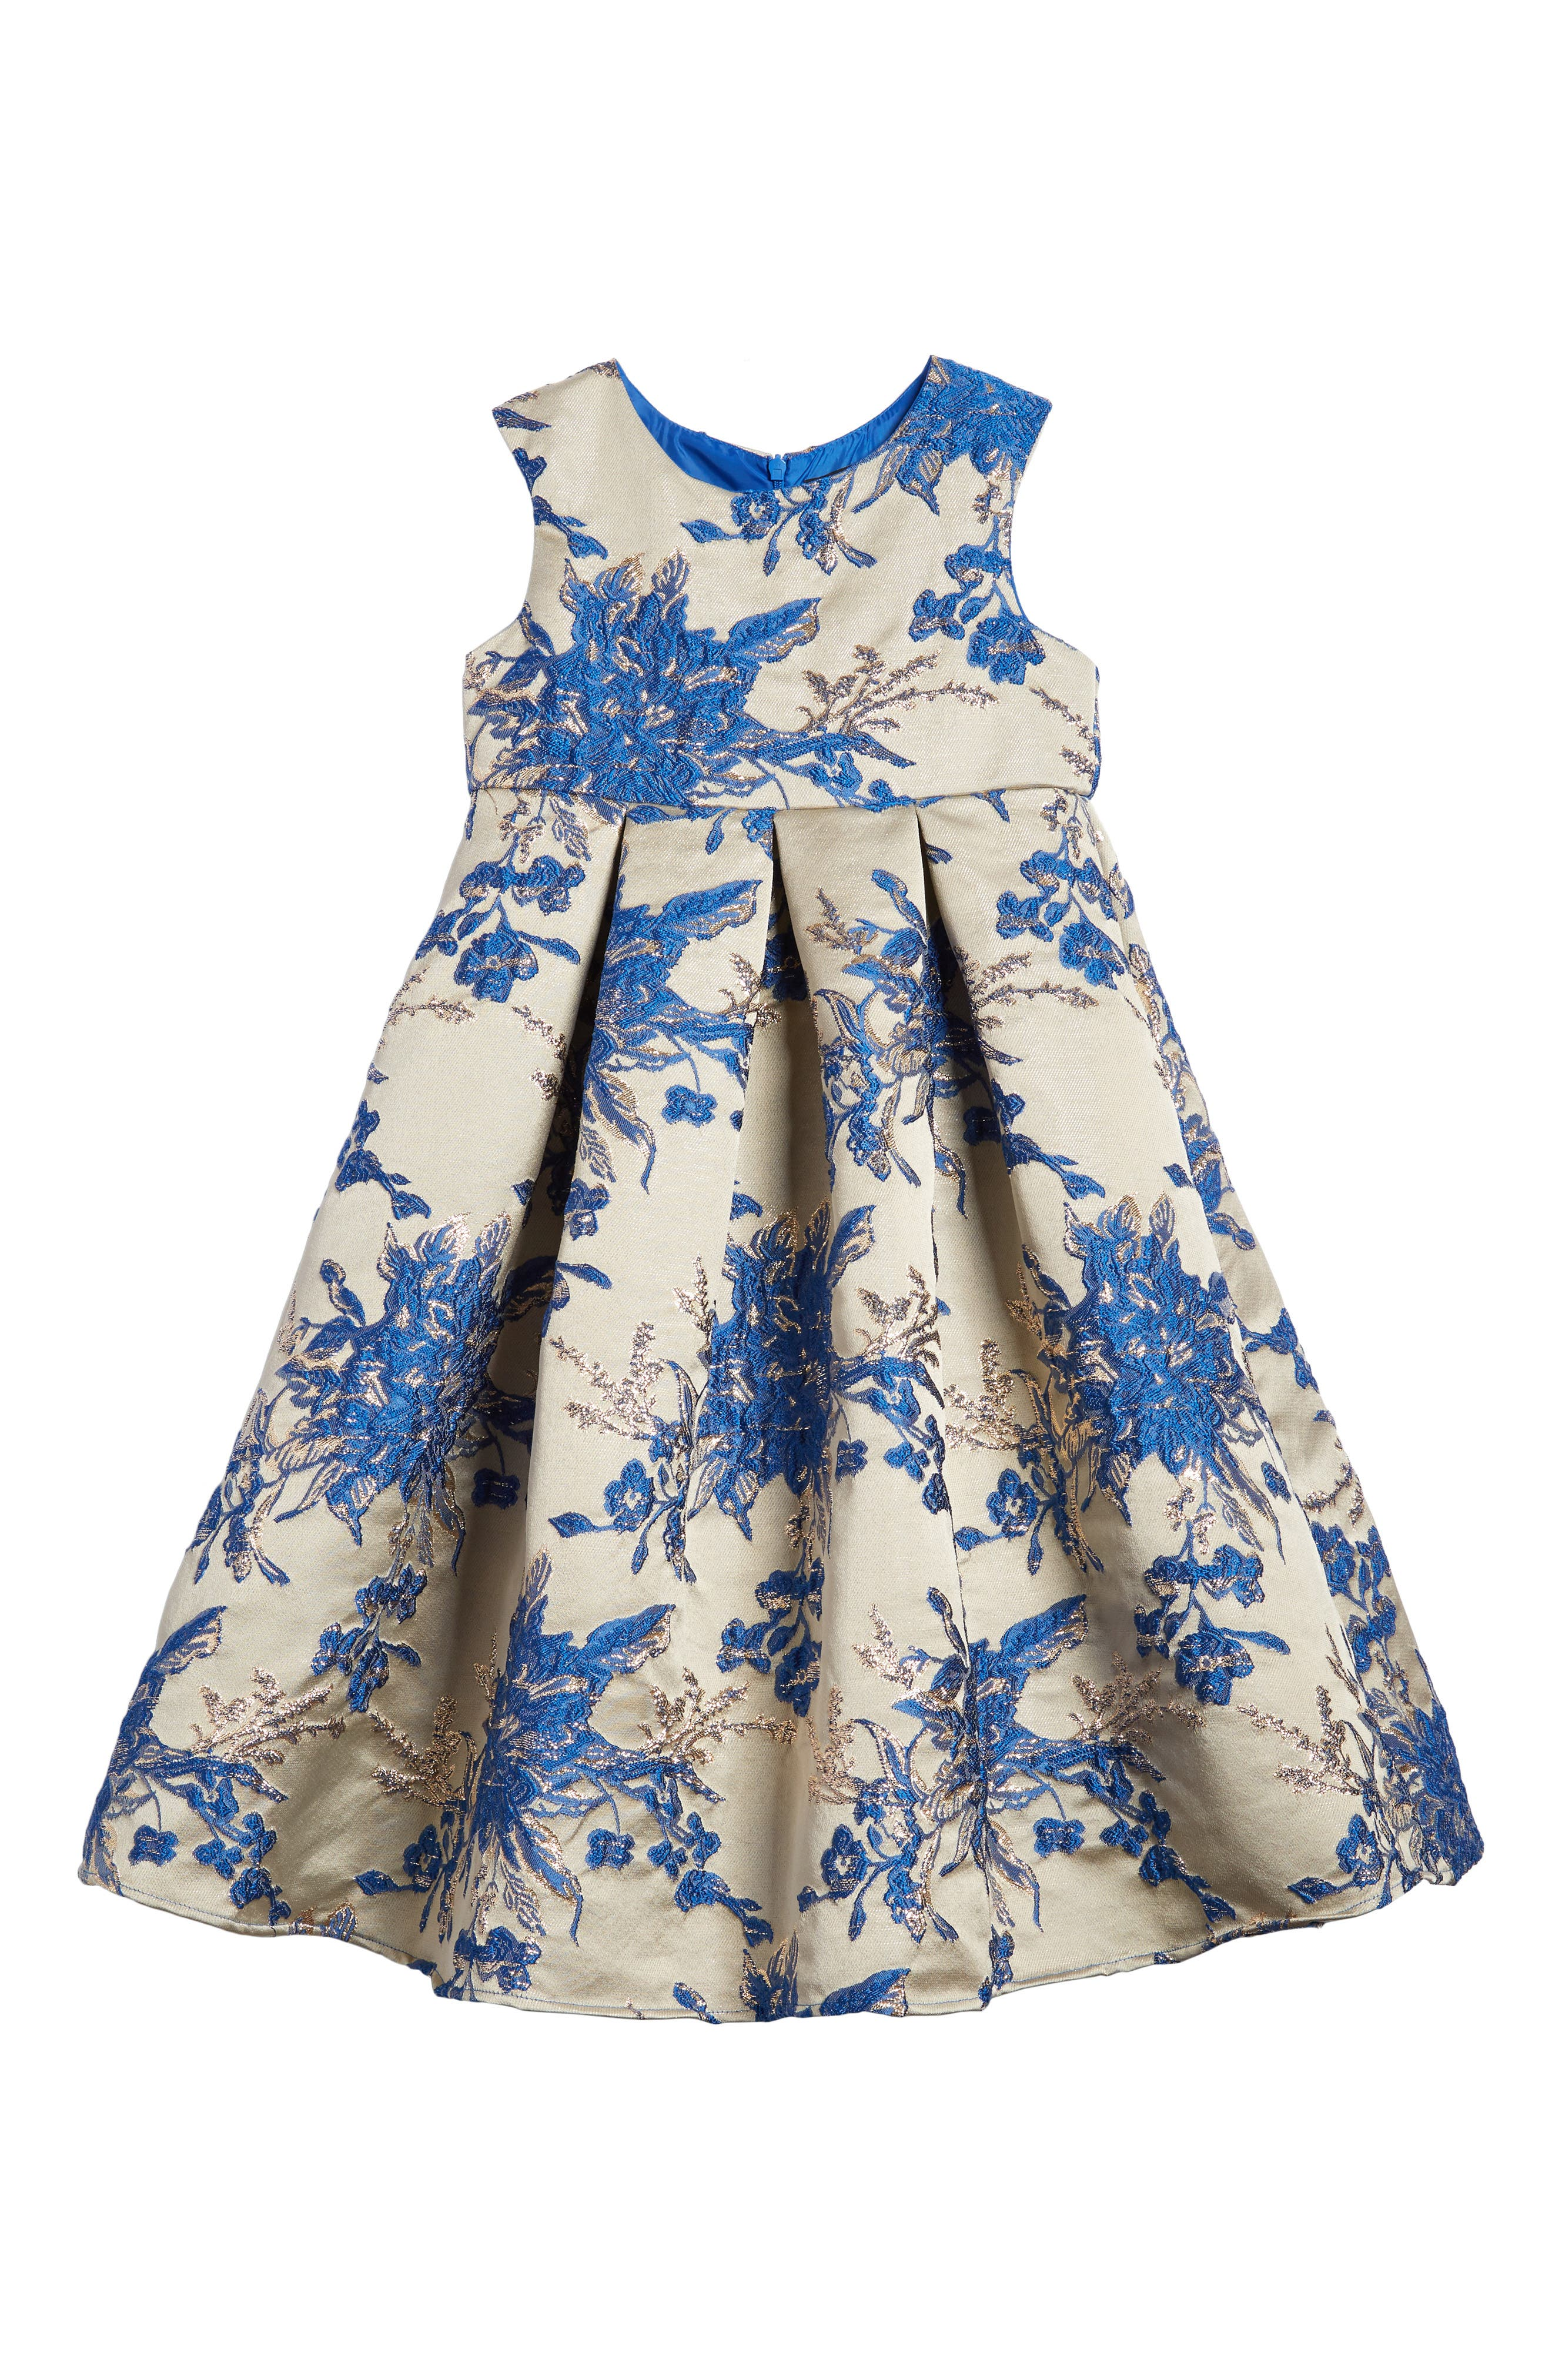 Main Image - Ava & Yelly Floral Embroidered Babydoll Dress (Little Girls)